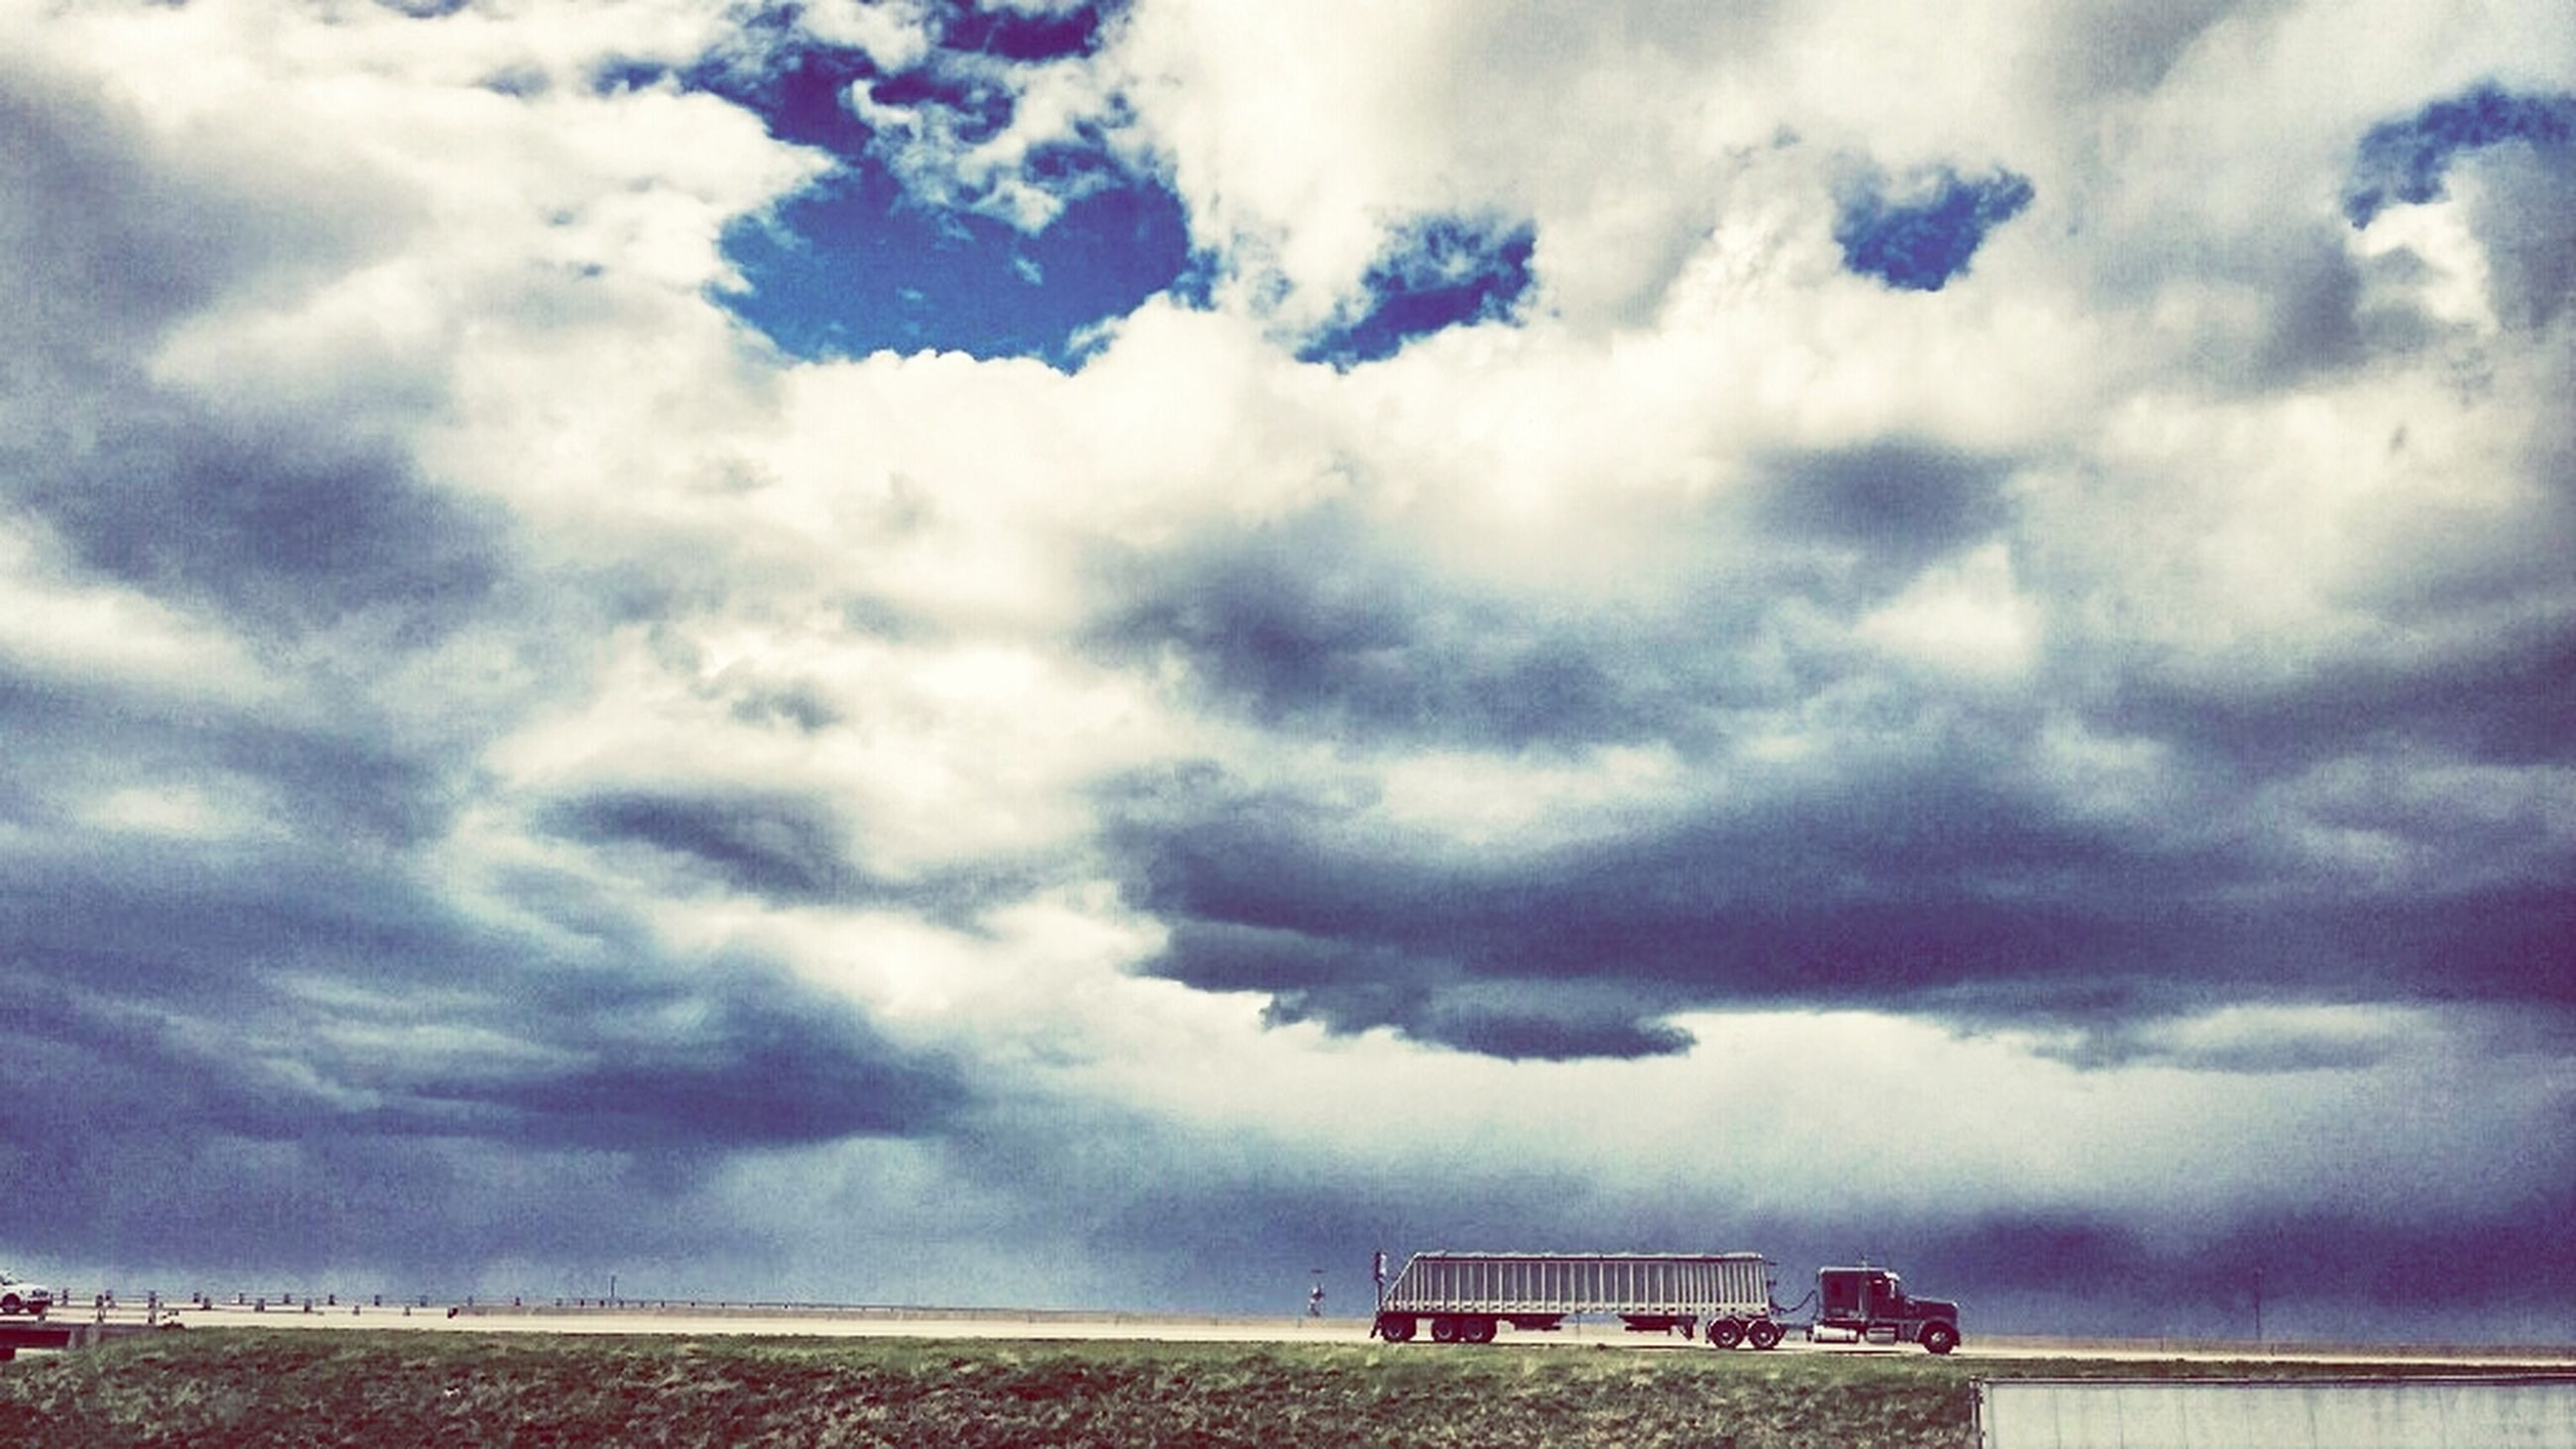 sky, cloud - sky, cloudy, weather, overcast, cloud, cloudscape, tranquility, scenics, beauty in nature, nature, tranquil scene, storm cloud, dramatic sky, landscape, day, transportation, outdoors, idyllic, sea